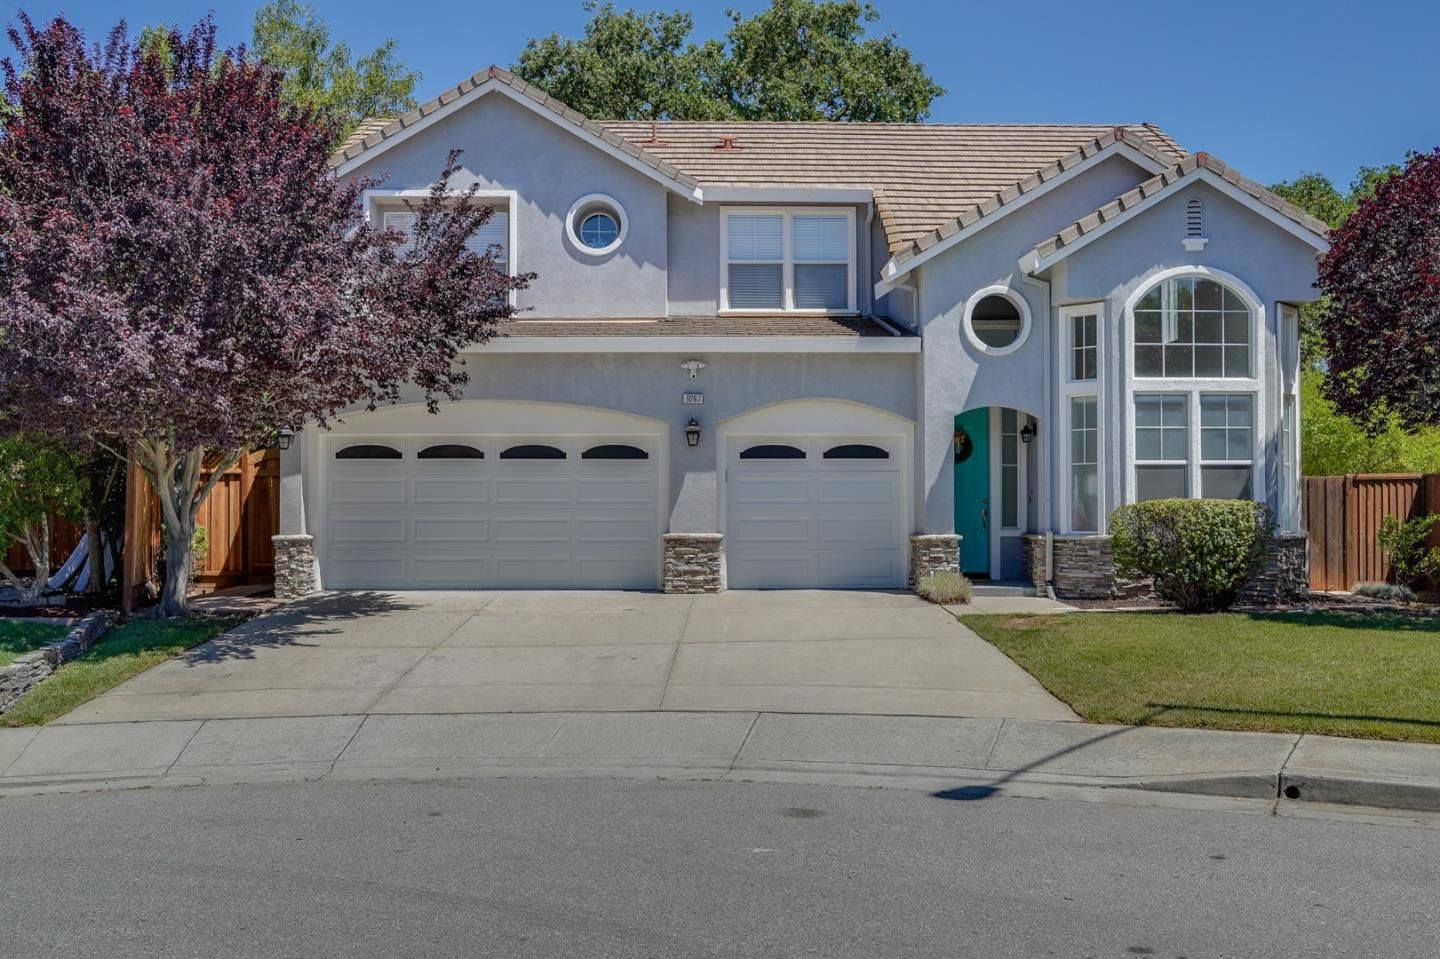 Photo for 9267 Dove Court, GILROY, CA 95020 (MLS # ML81846972)